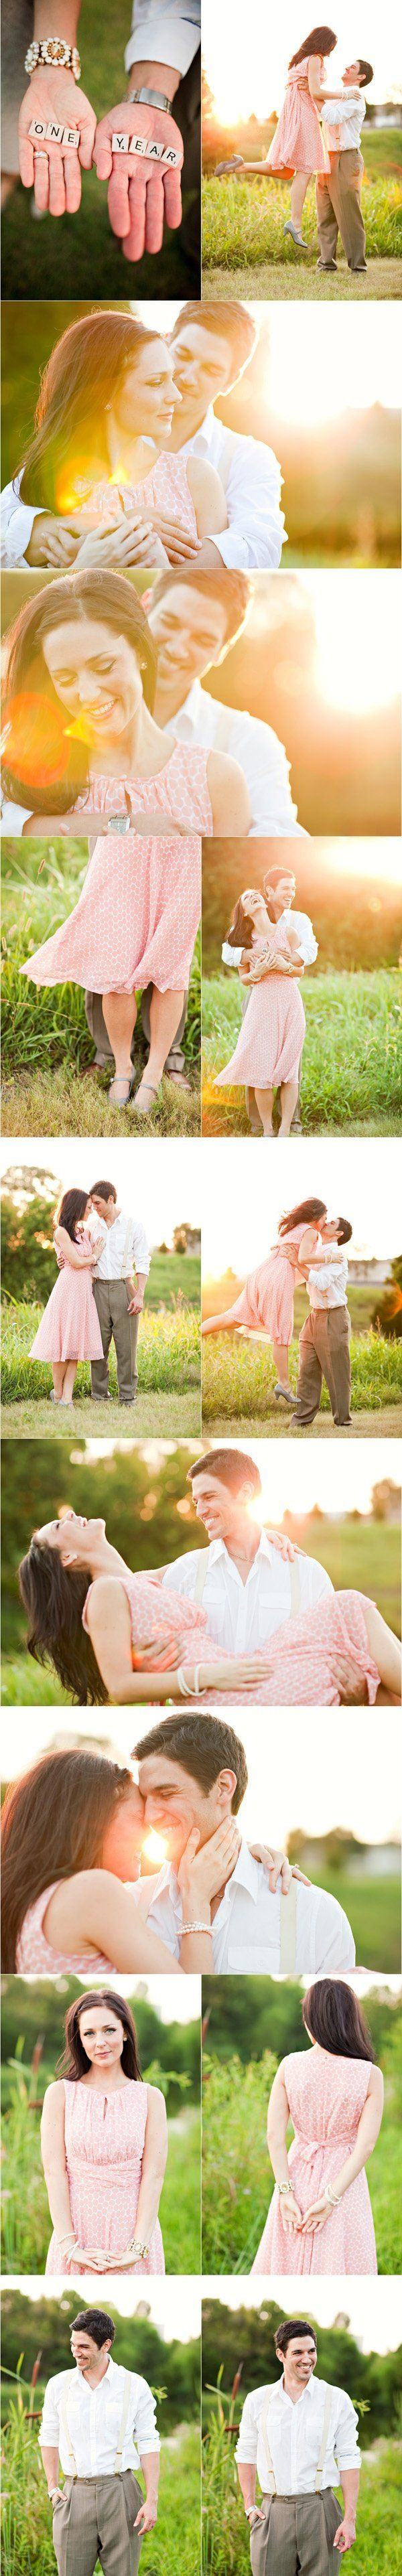 First Anniversary Shoot. They had me with the scrabble tiles